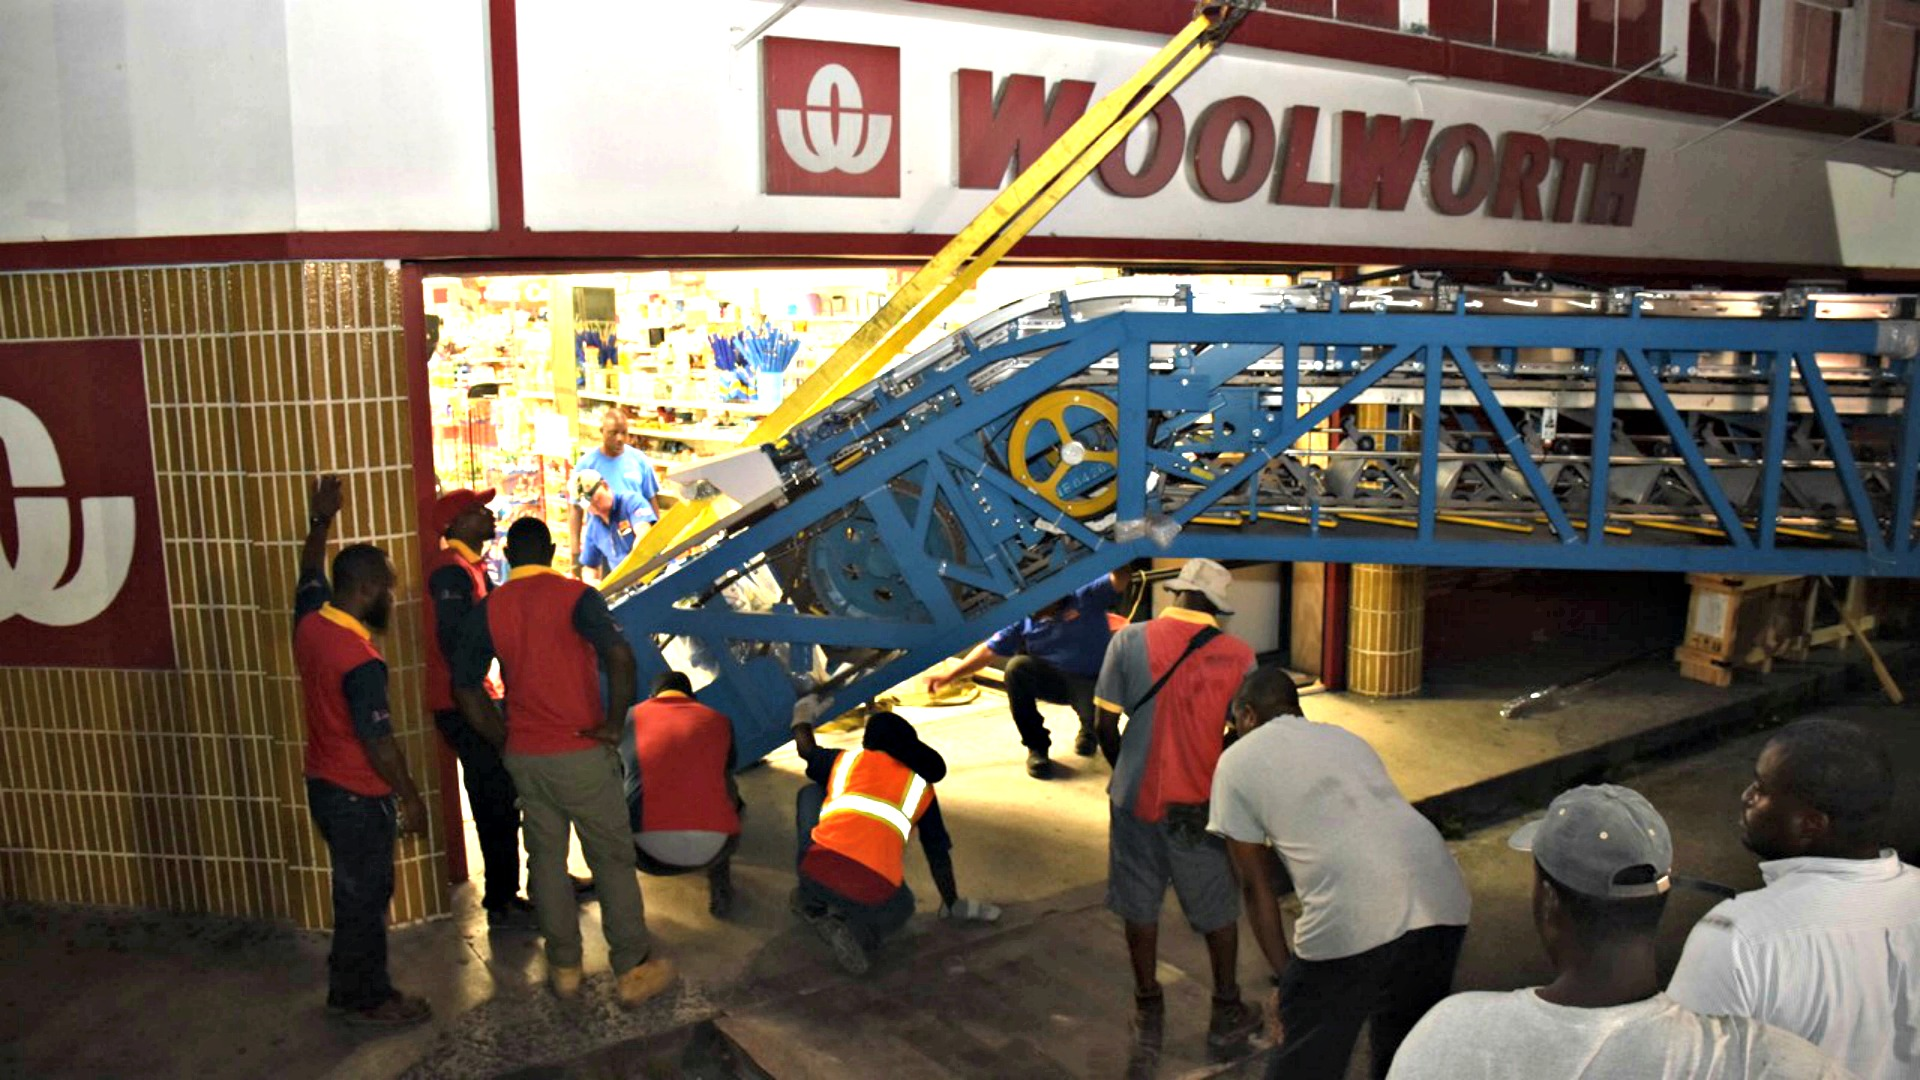 Woolworth enters a new era with change in escalator | Loop News